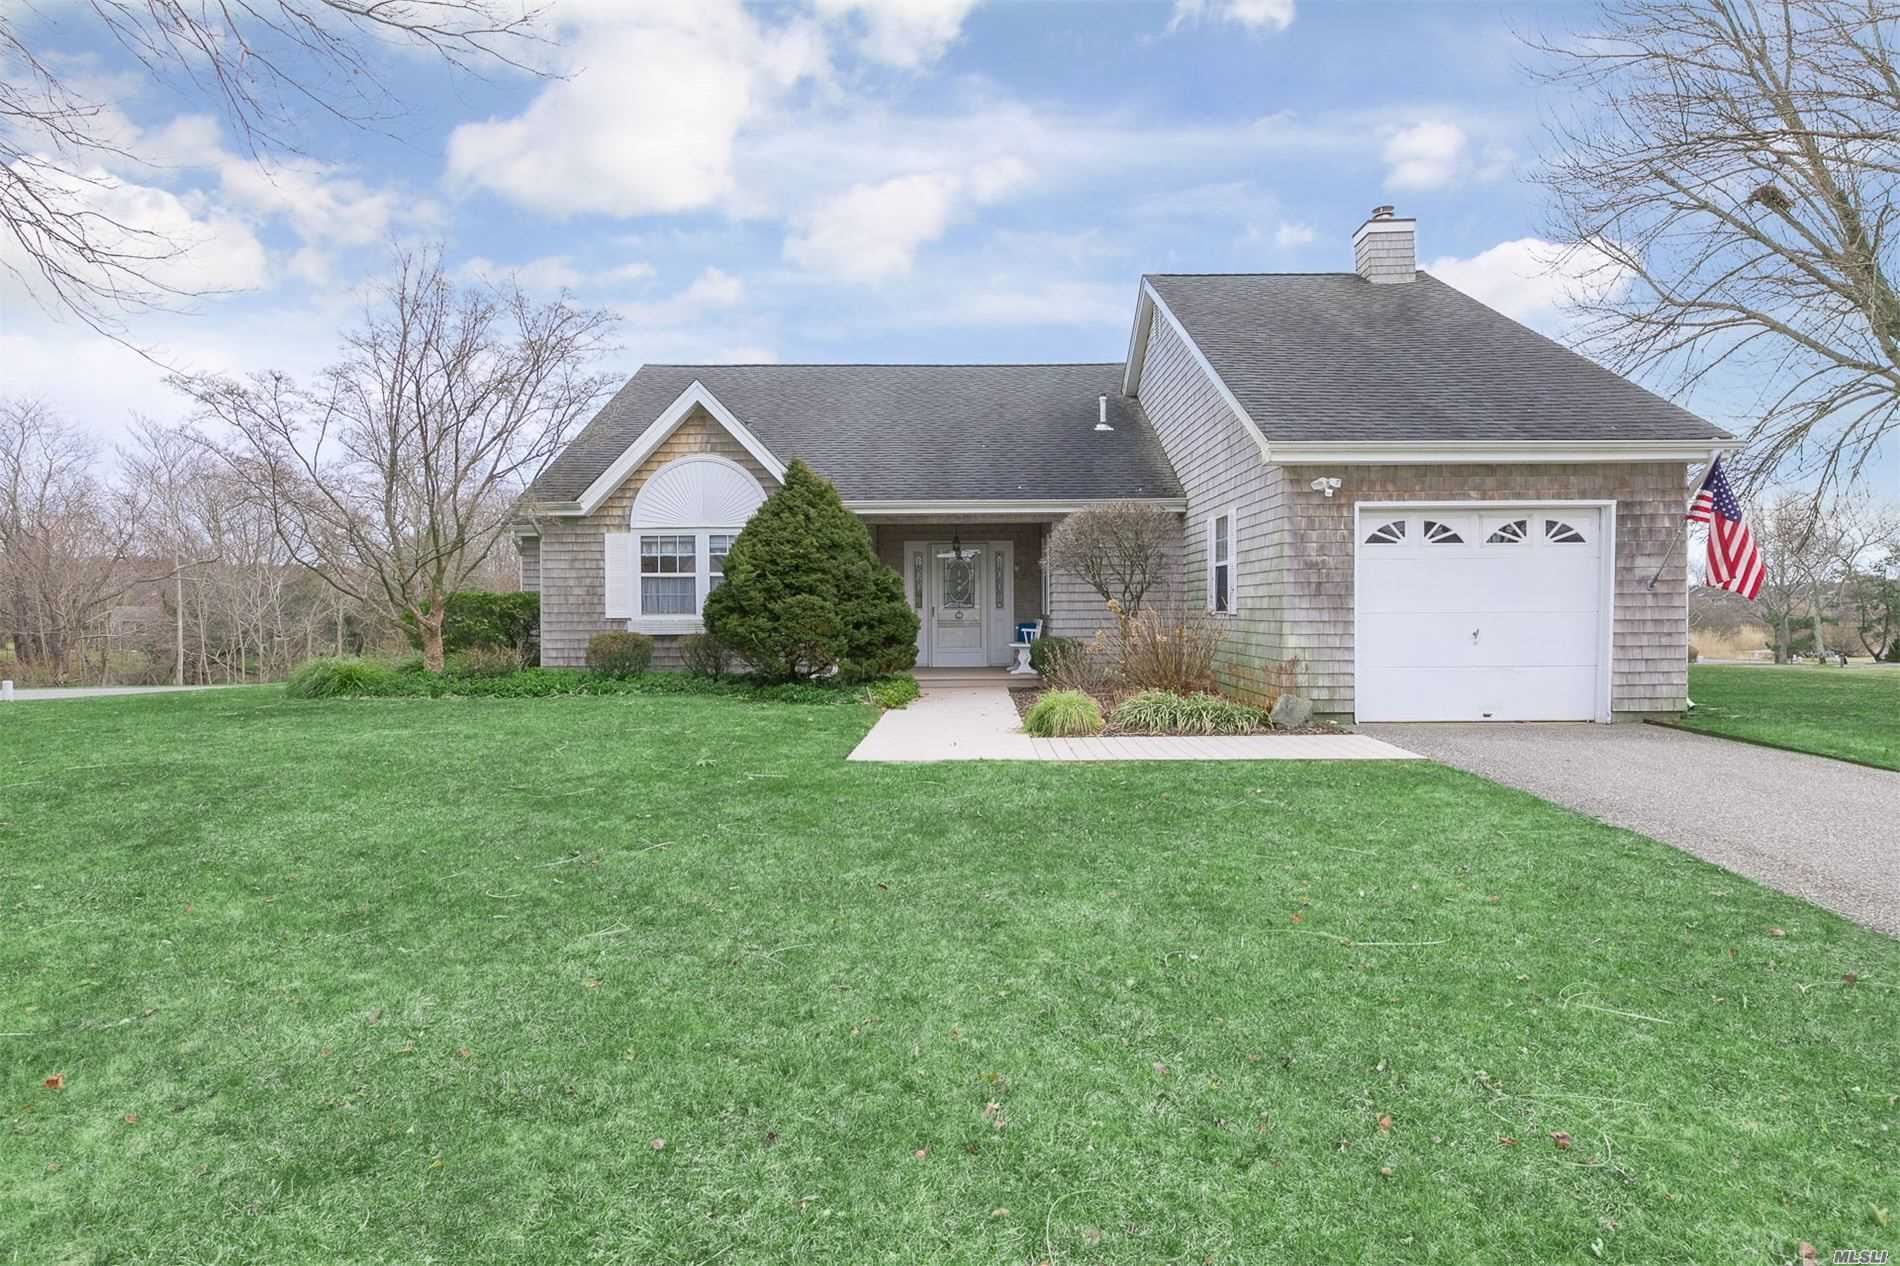 8 Thoroughbred Court, East Moriches, NY 11940 - MLS#: 3206576